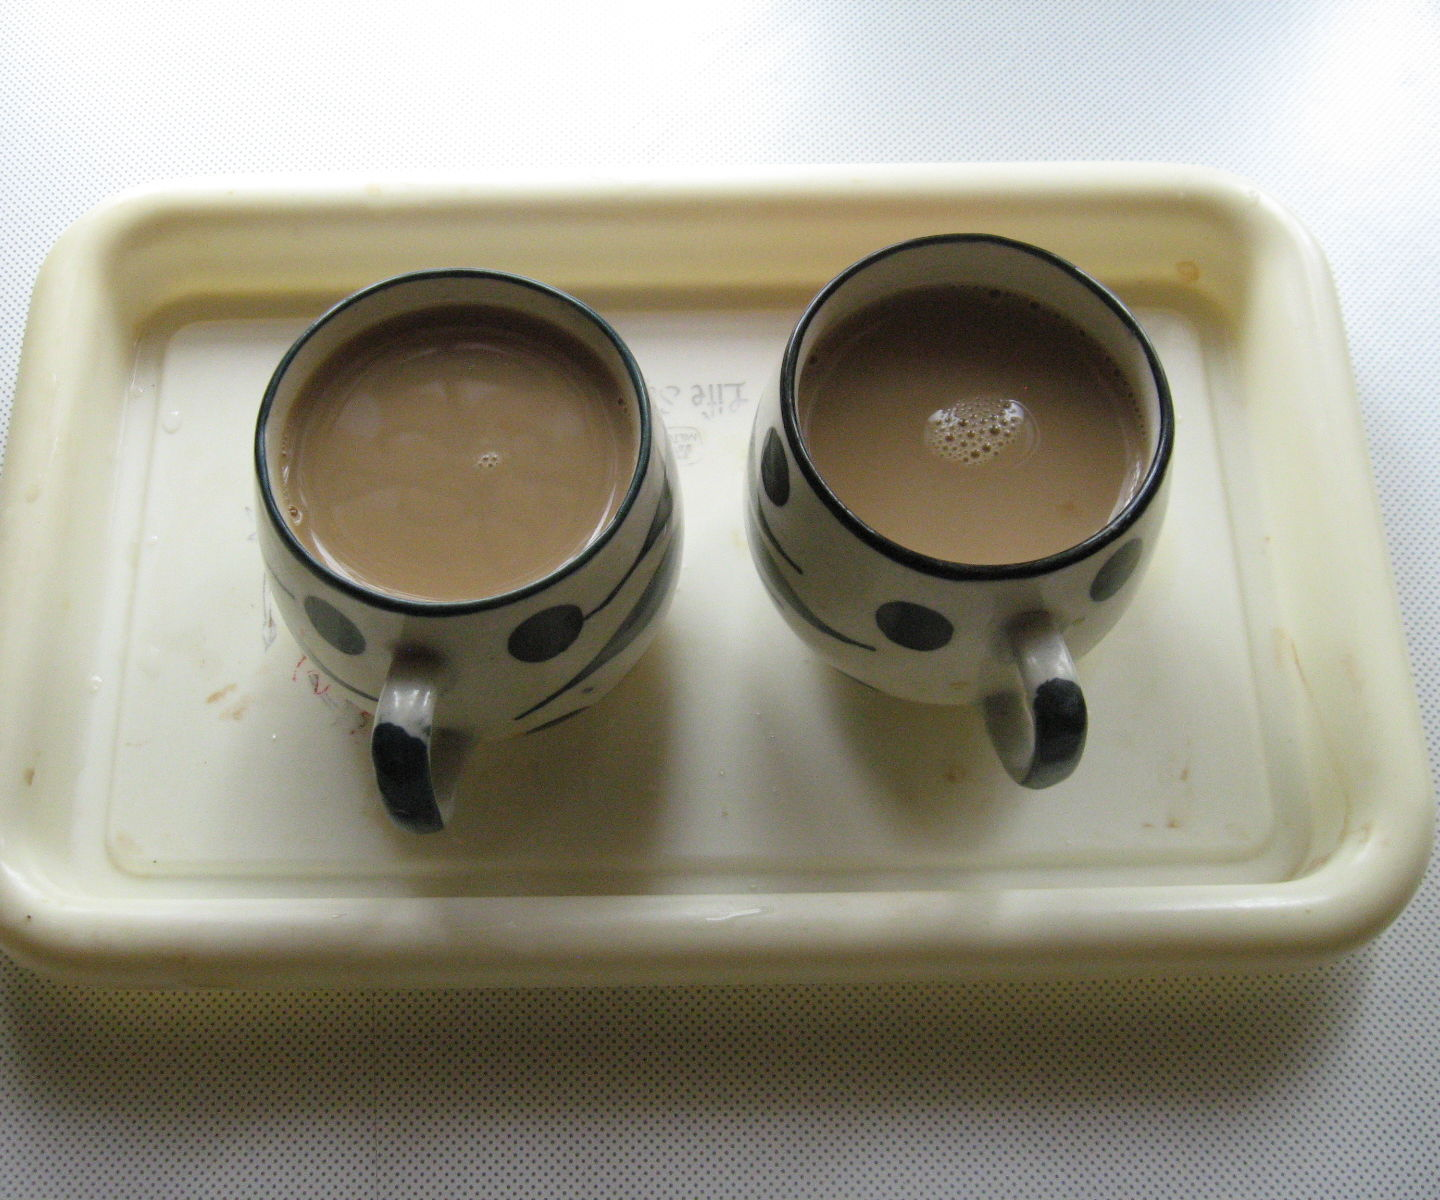 How to Prepare Filter Coffee